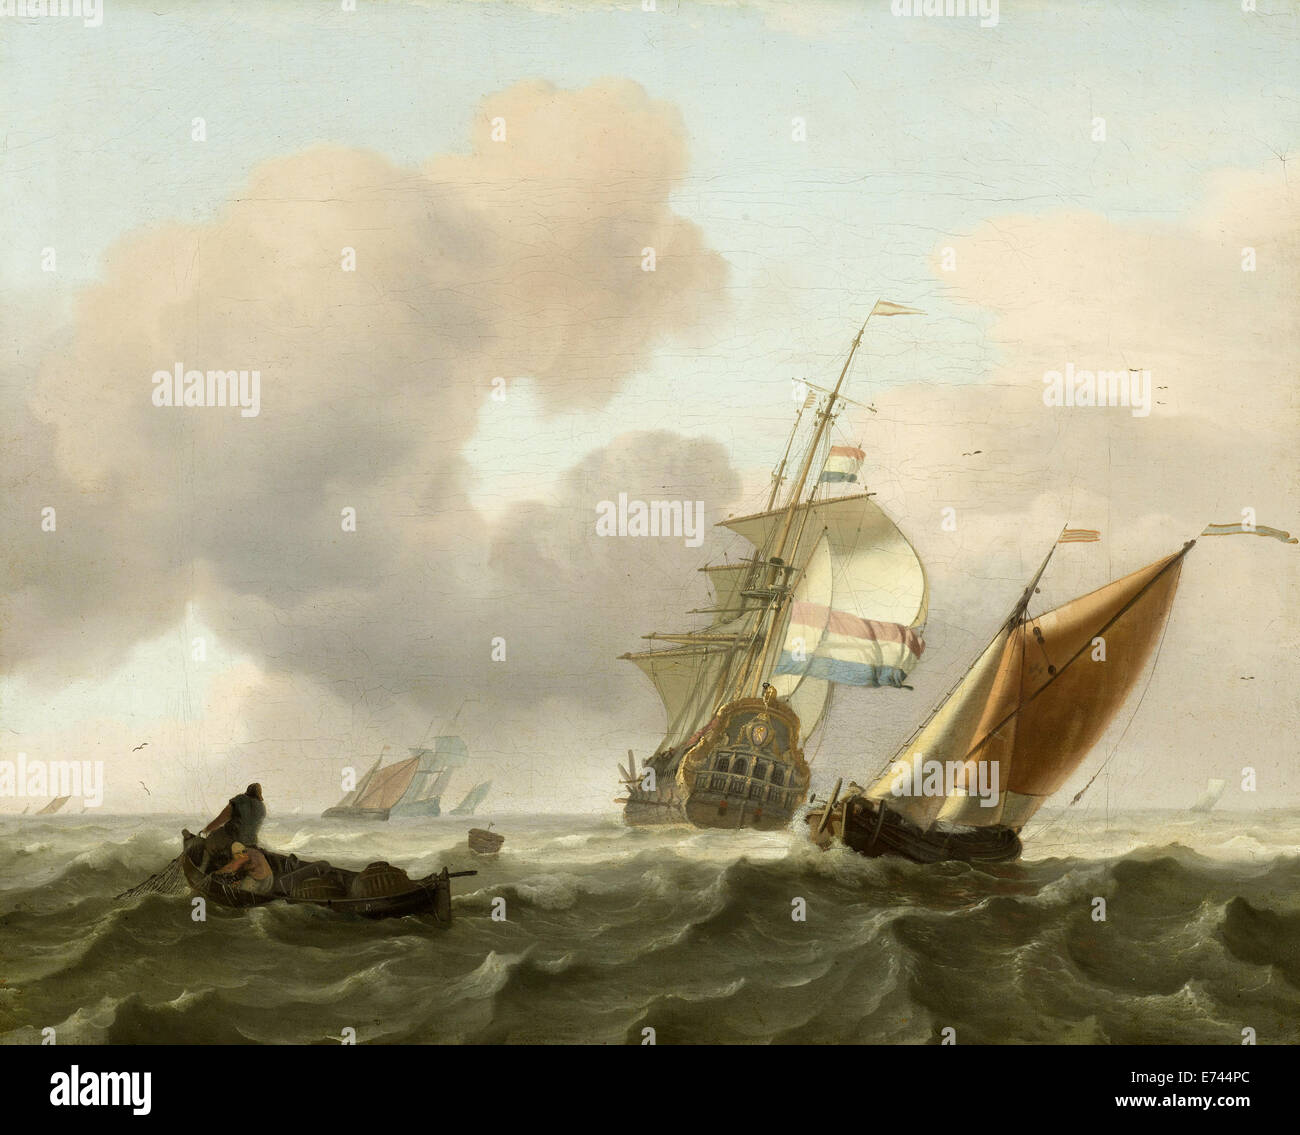 Rough sea with ships - by Ludolf Bakhuysen, 1697 - Stock Image